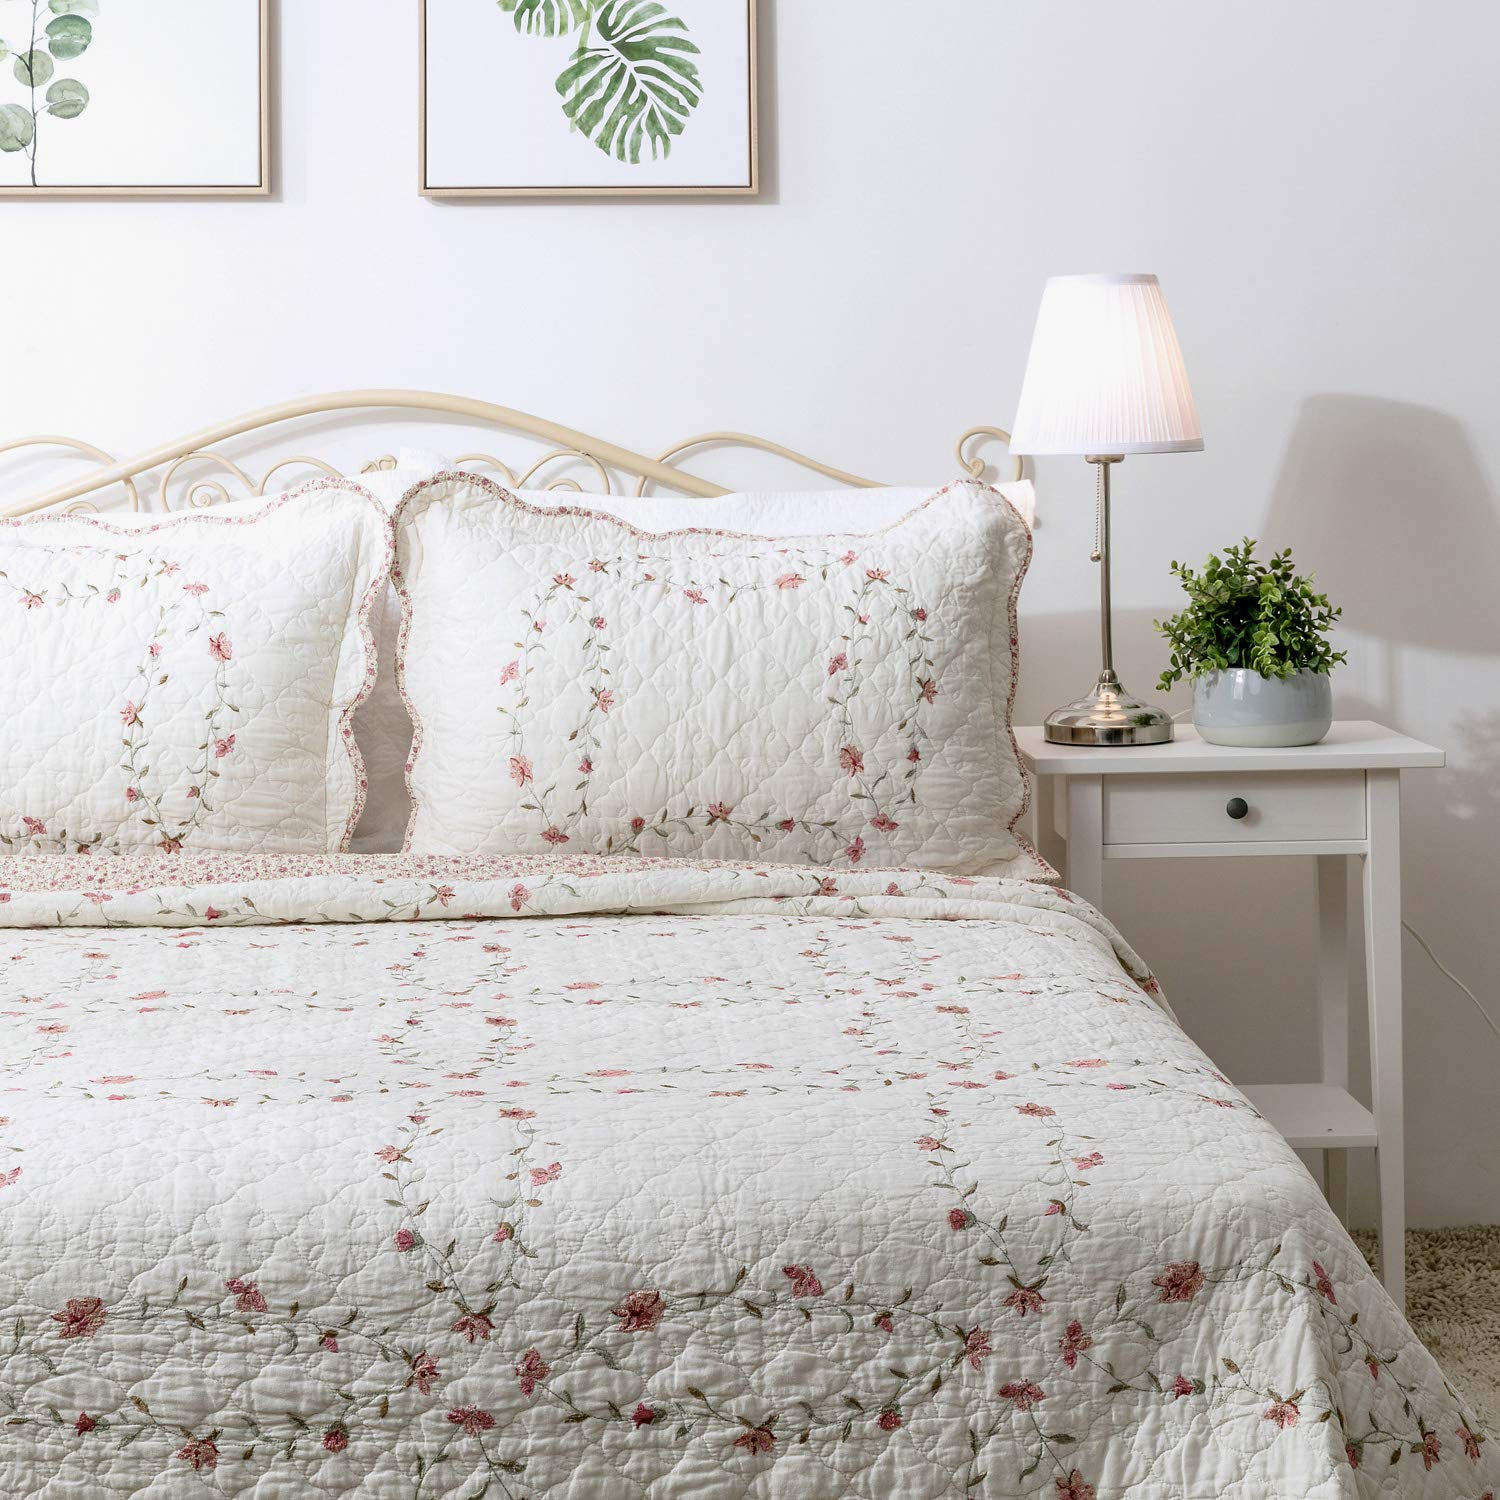 """Queen Size Elegant Life 100/% Cotton Reversible Soft Floral Pattern Windsor Love Embroidery Bed Quilt Coverlet Bedspread 92/""""x92/"""" FJ HOME FASHIONS"""